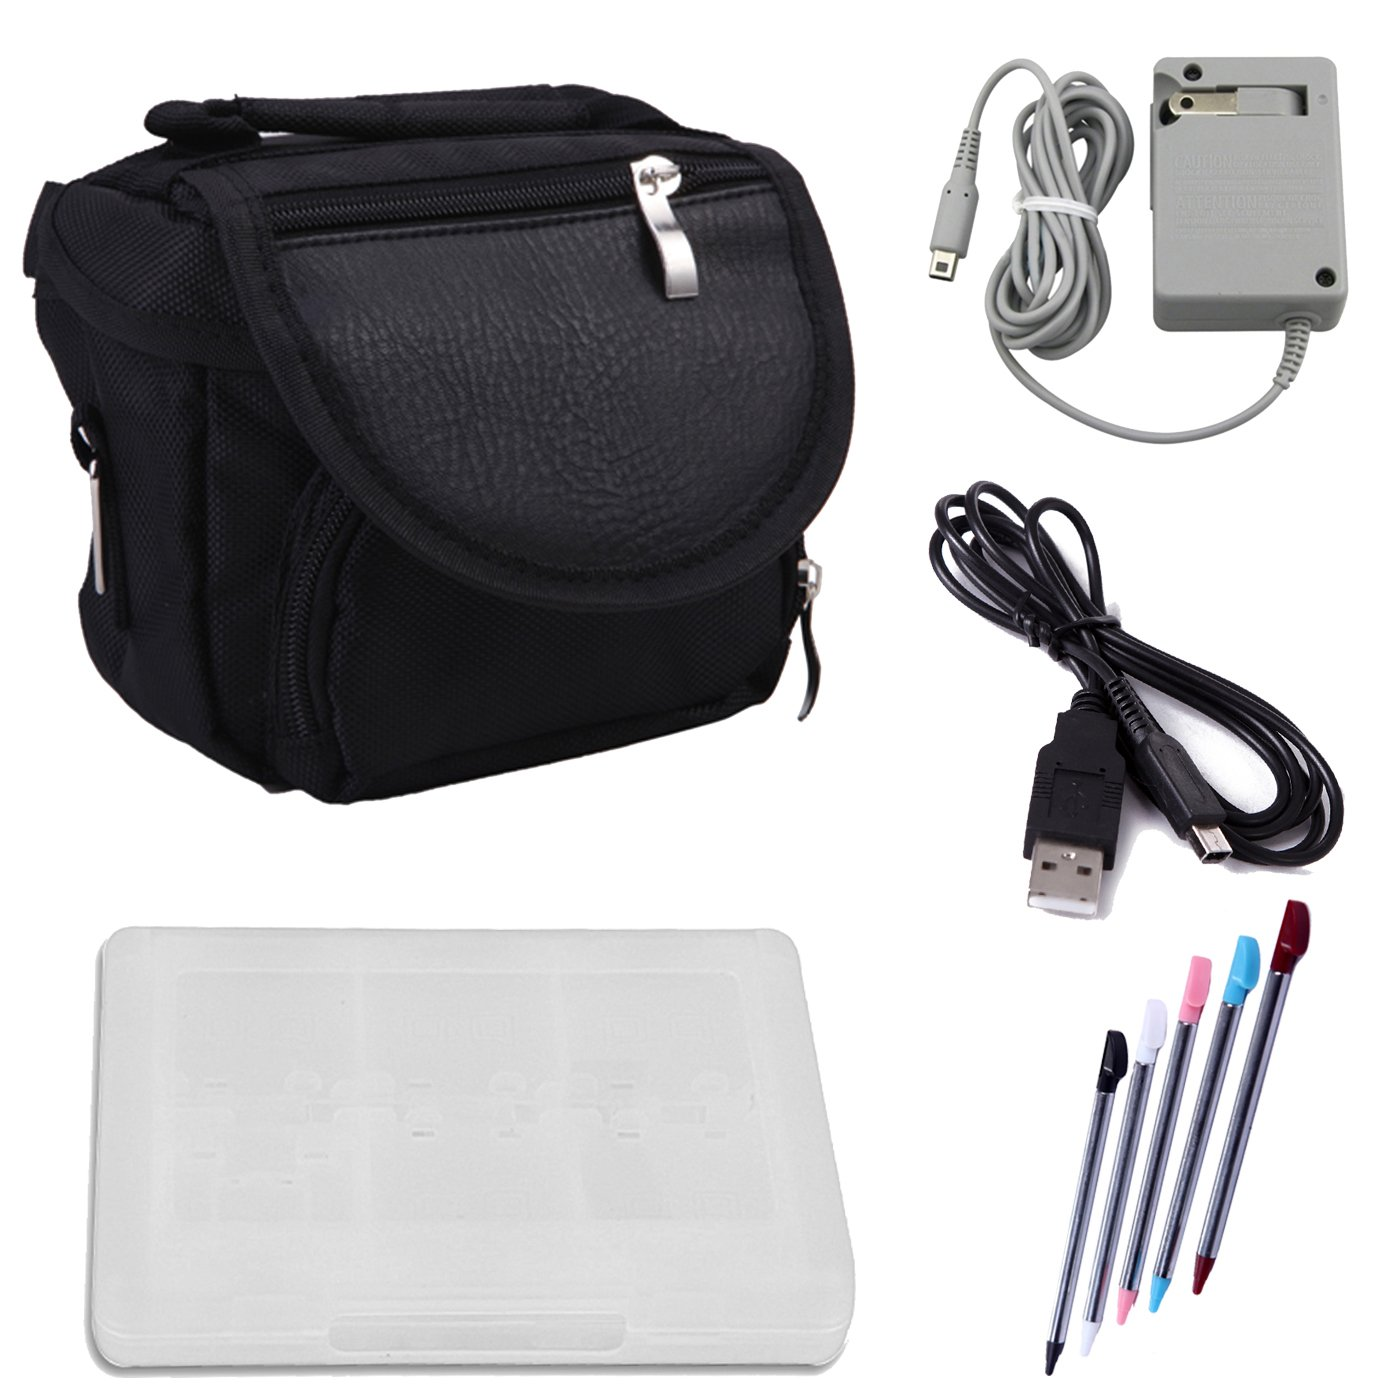 HDE Travel Bag Bundle for Nintendo 3DS Travel Bag Carrying Case + Game Card Holder + 5-Pack Retractable Stylus Pens + USB Charger Cable + AC Power Adapter (Nintendo 3DS XL, 3DS, DSi XL, DSi, DS Lite)